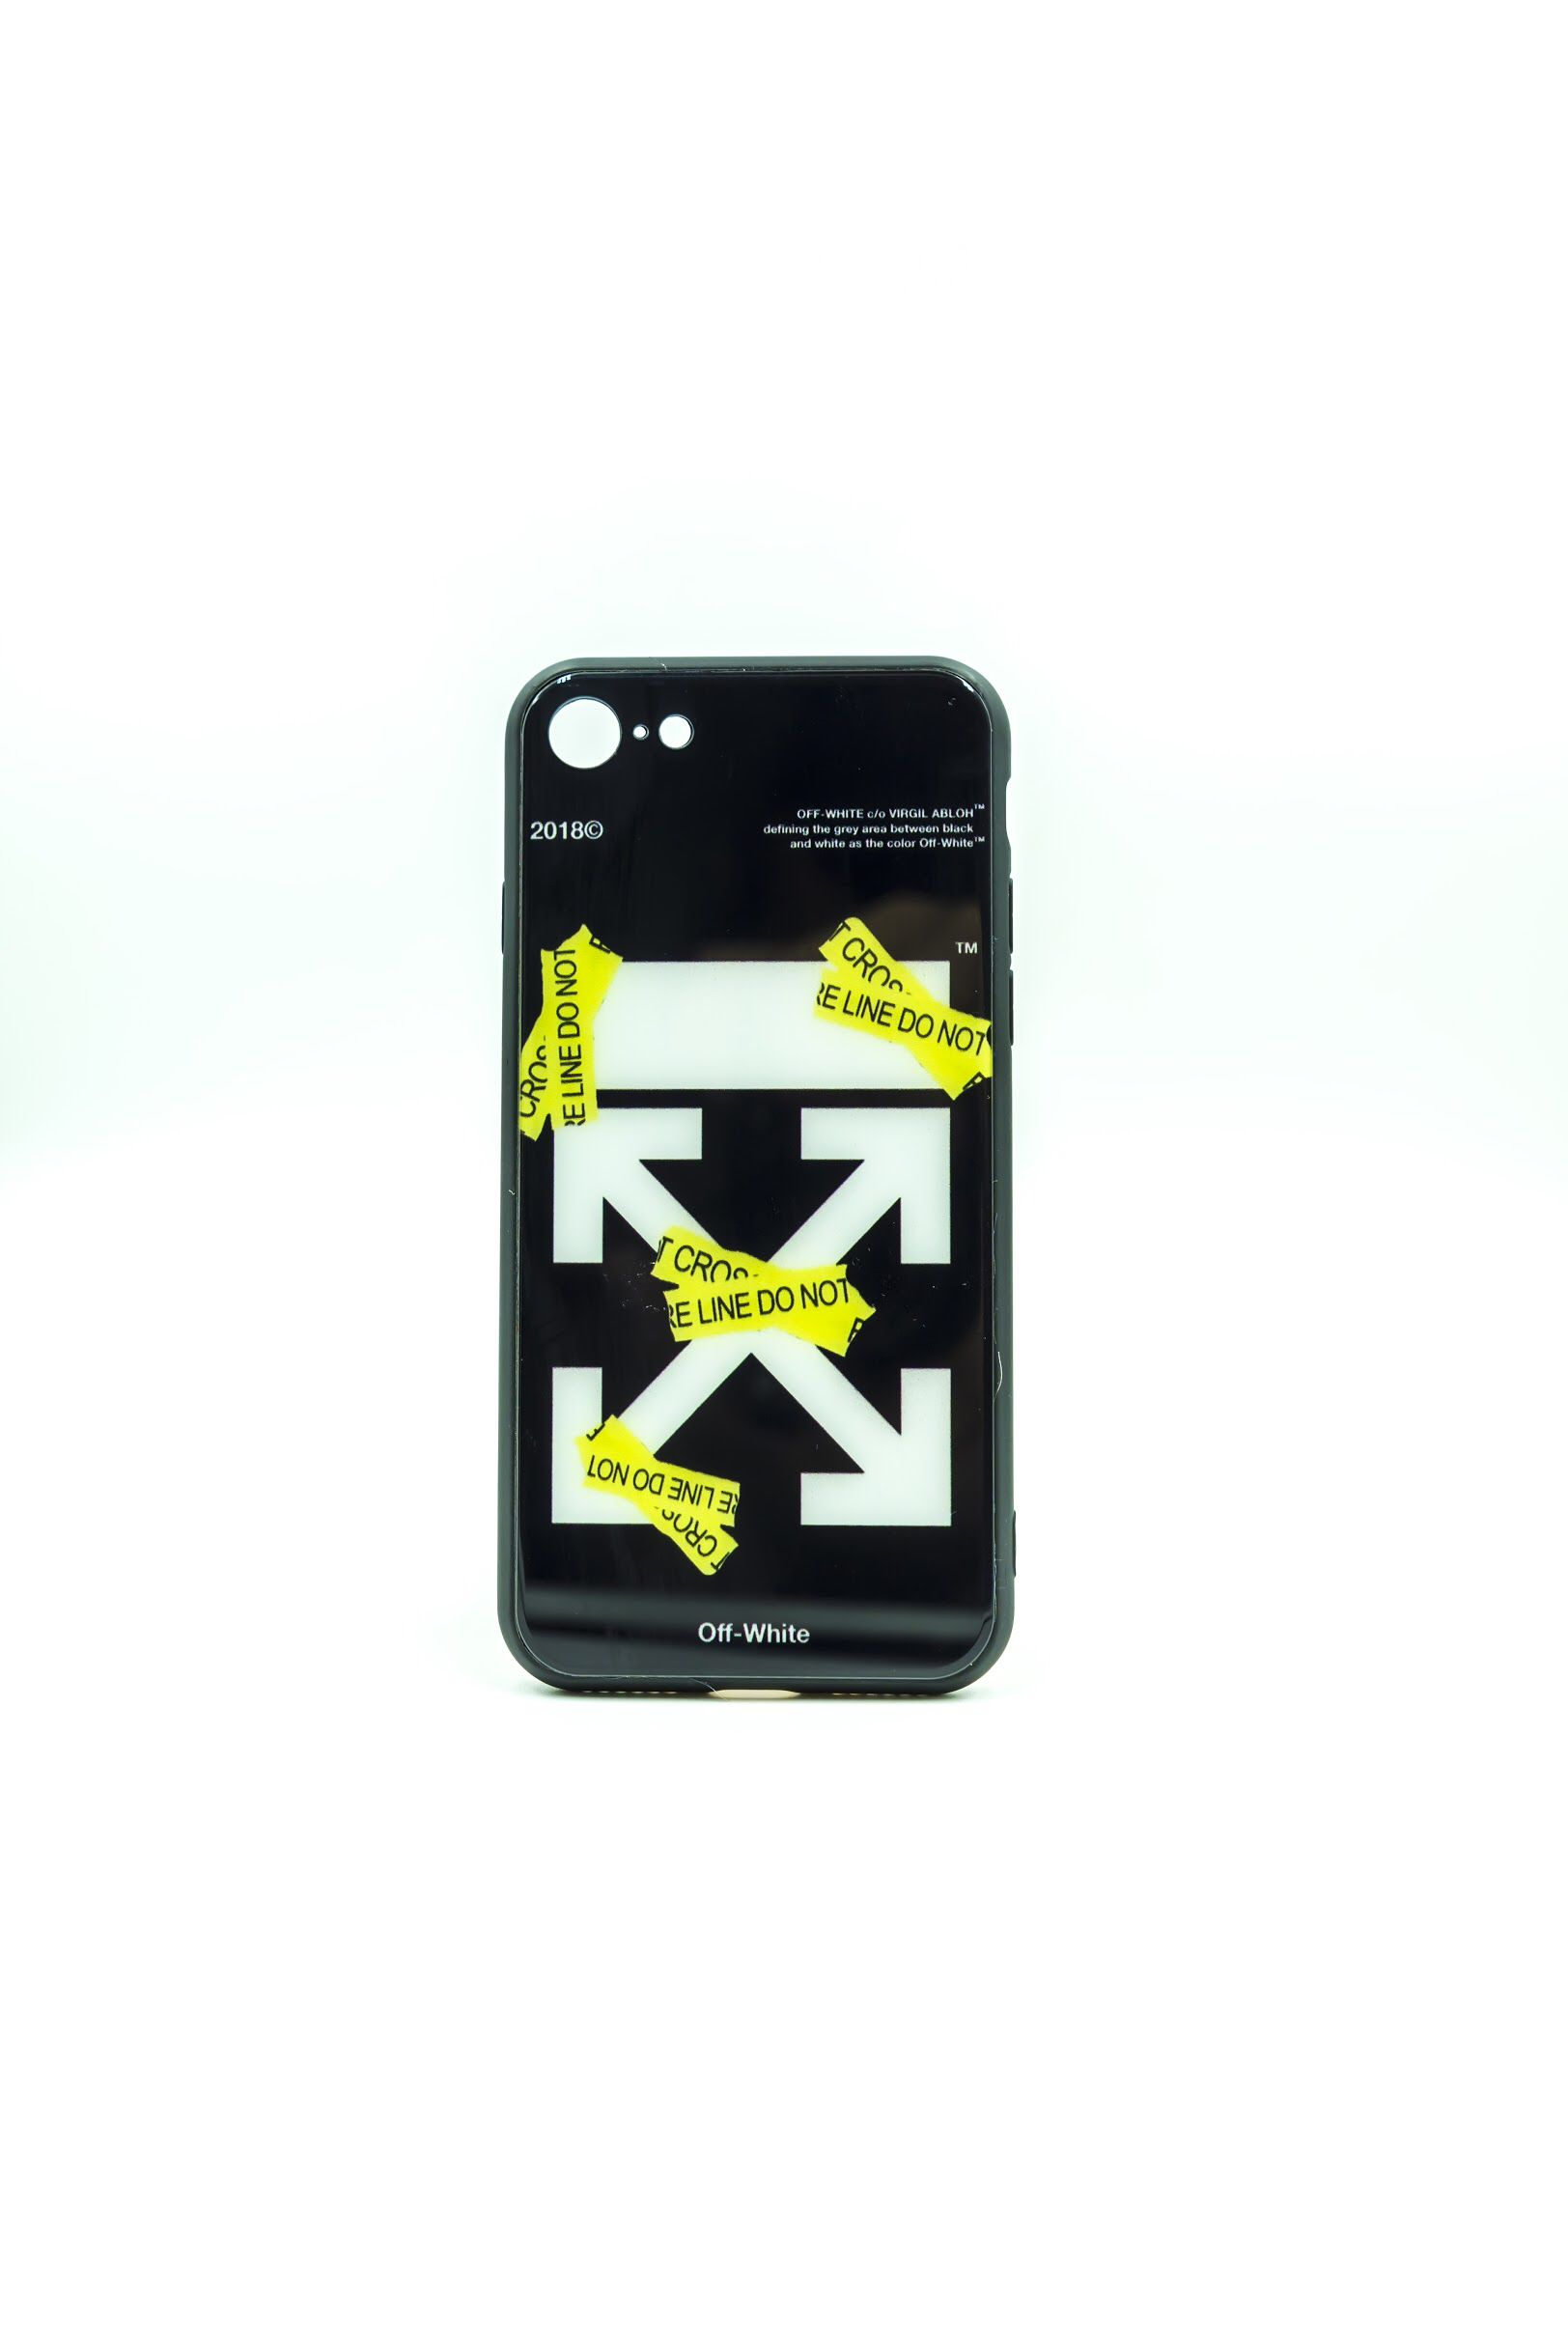 db5e0528dc93 OFF WHITE iPhone Case Wallpaper. Virgil abloh off white iPhone Case caution  tape. iPhone X off white case